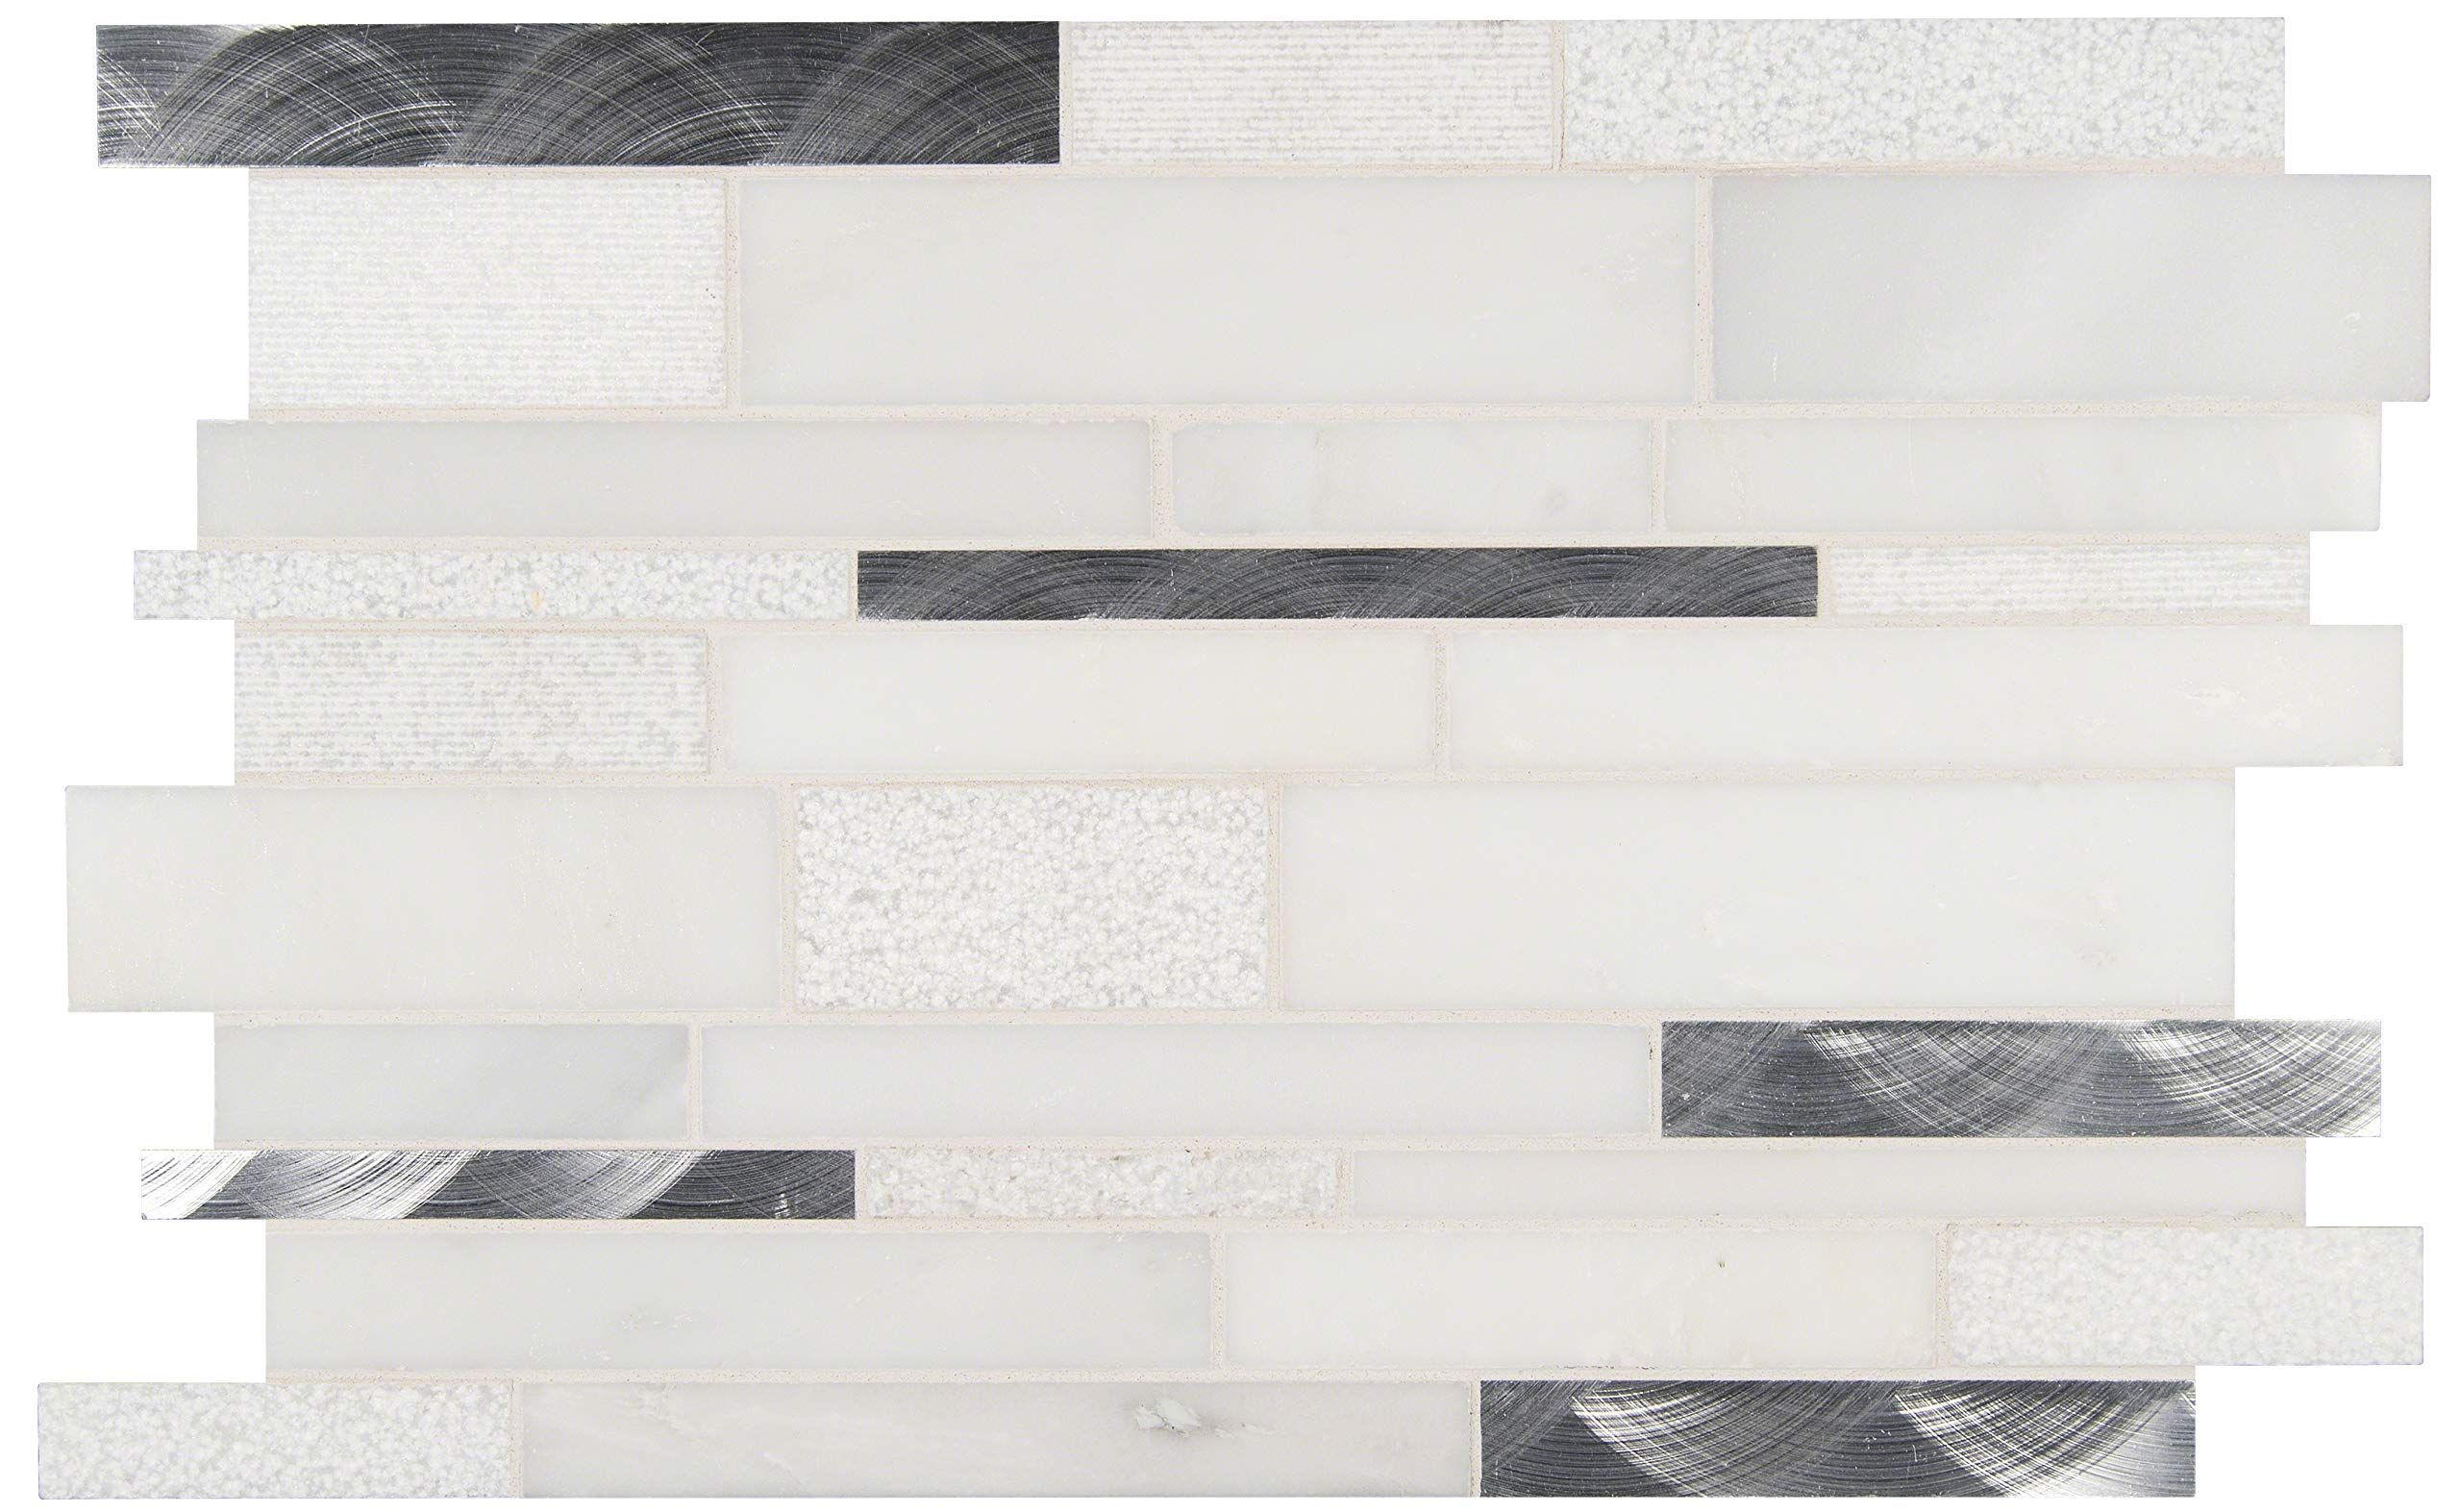 MS International AMZ-MD-00123 Moderno Blanco Interlocking Tile 12 in. x 18 in. White 10 Piece by MS International